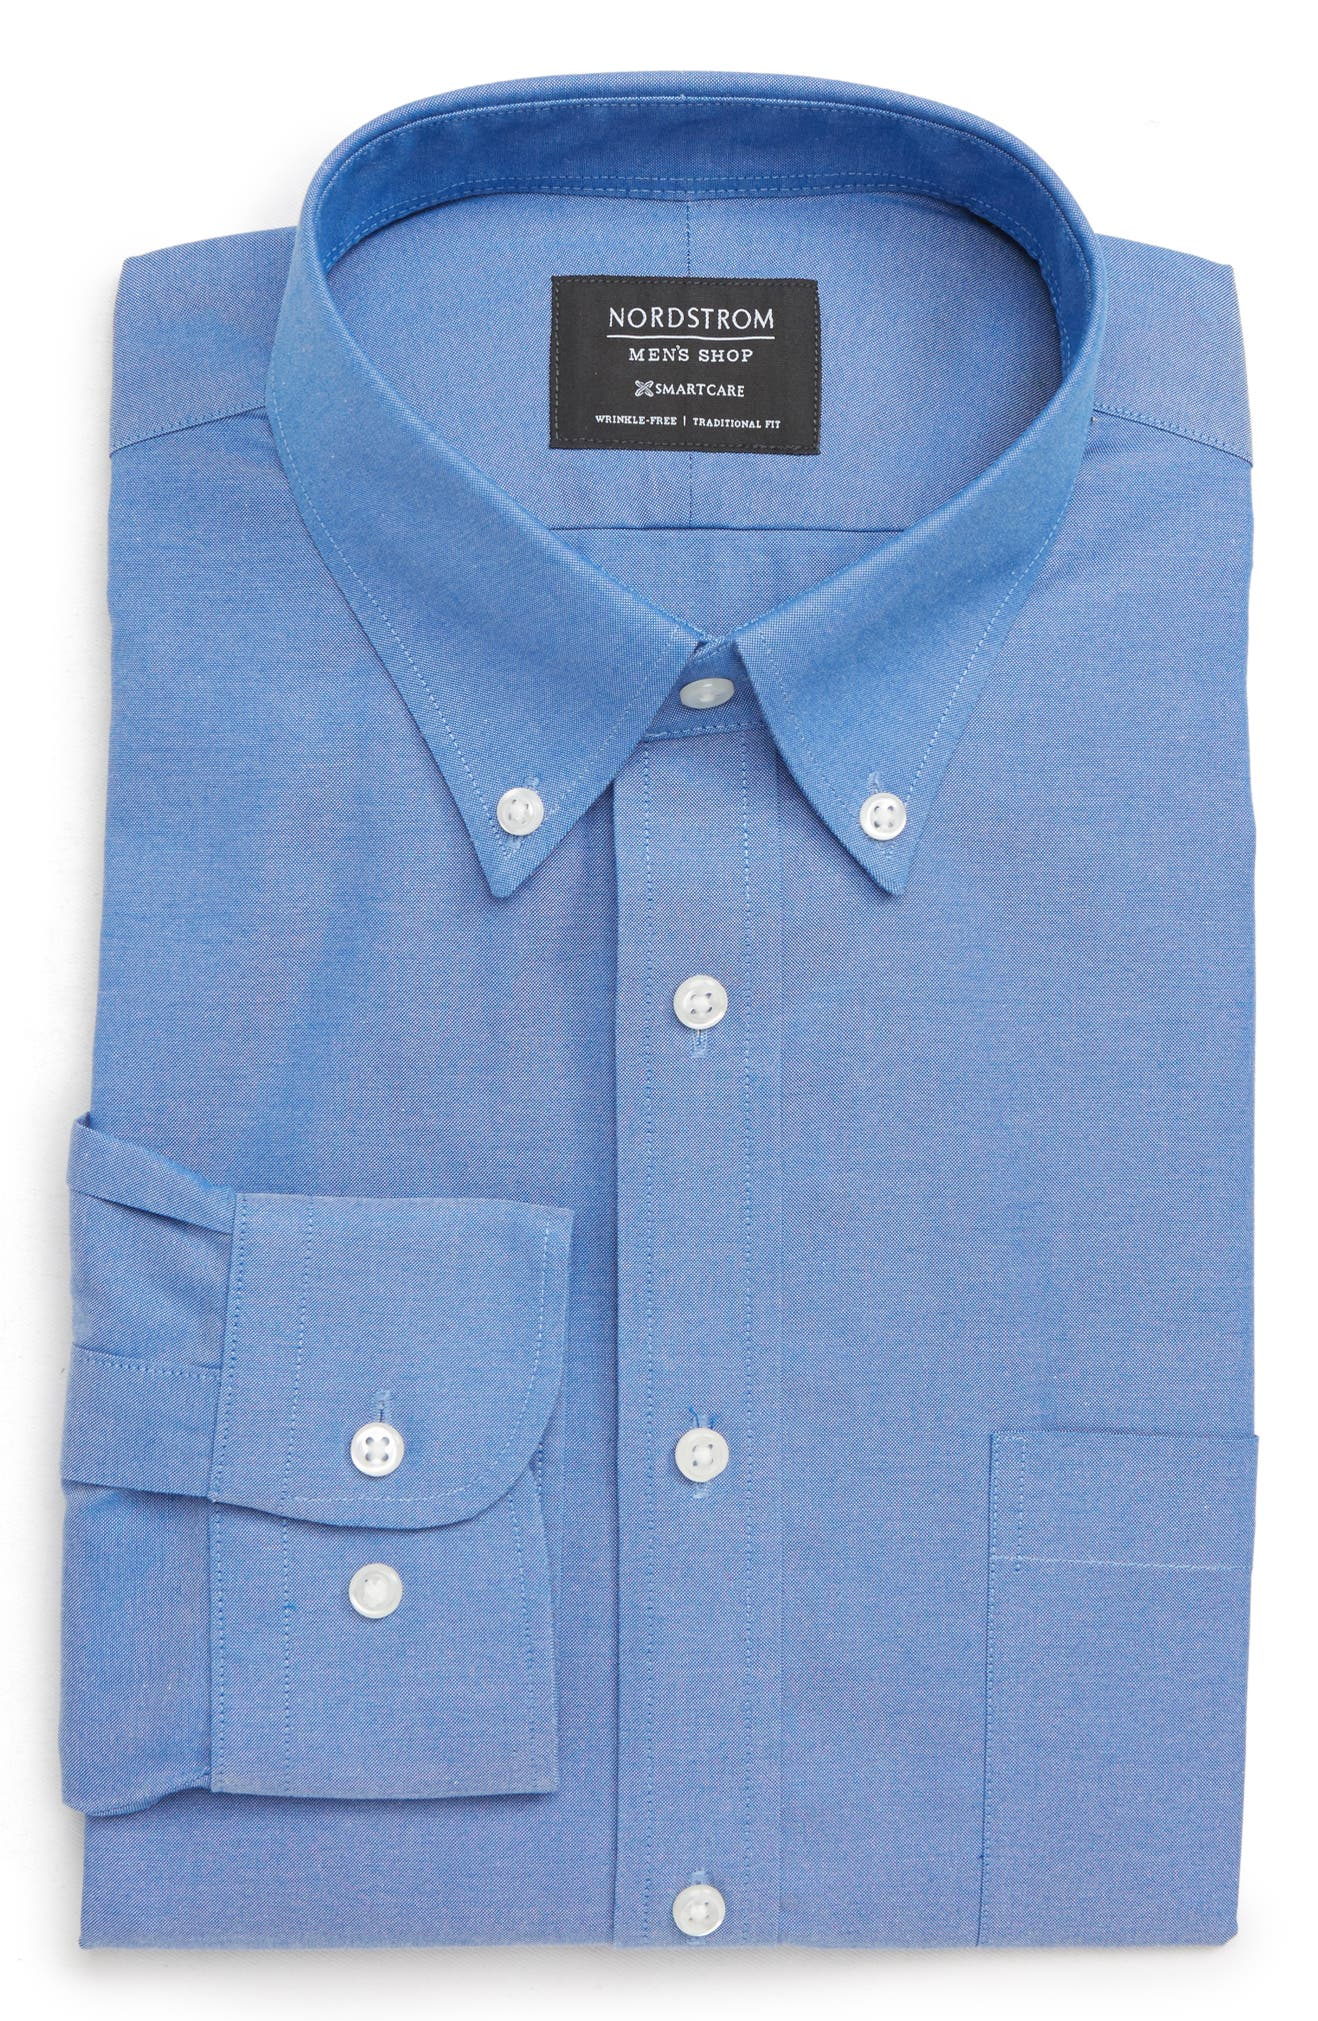 Nordstrom Mens Shop Smartcare Traditional Fit Pinpoint Dress Shirt